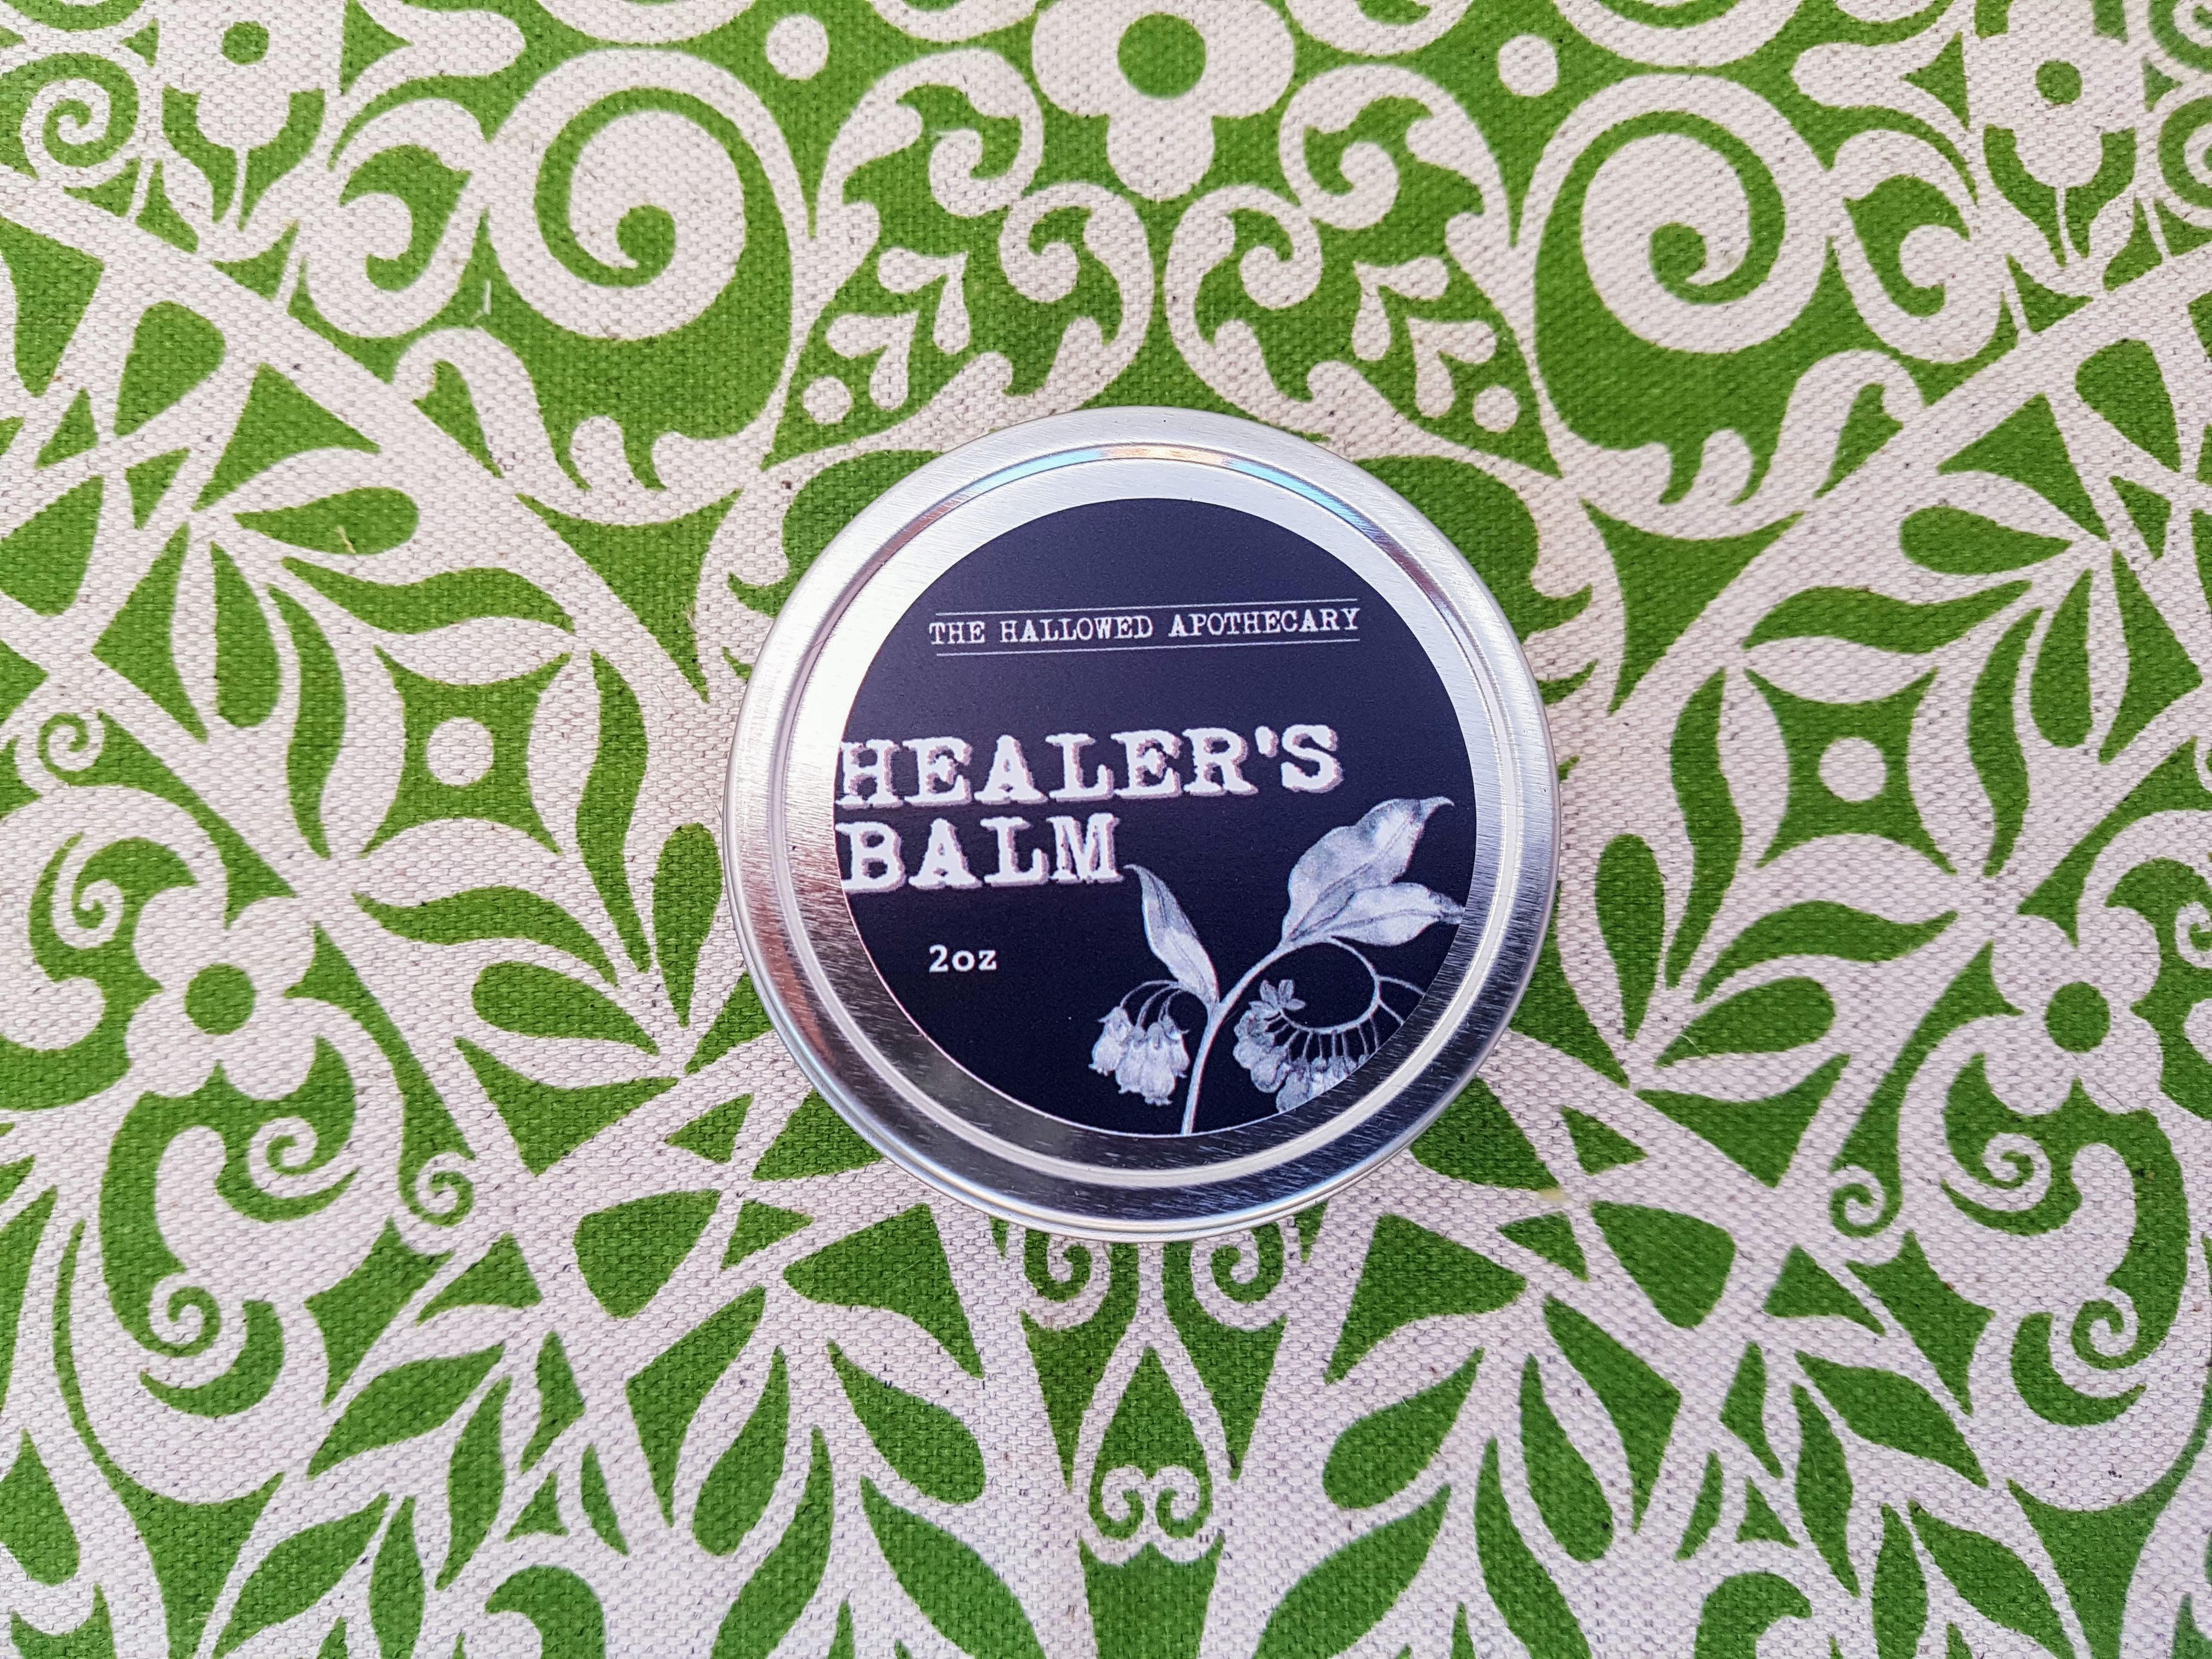 healer's balm is an all heal salve for various skin issues